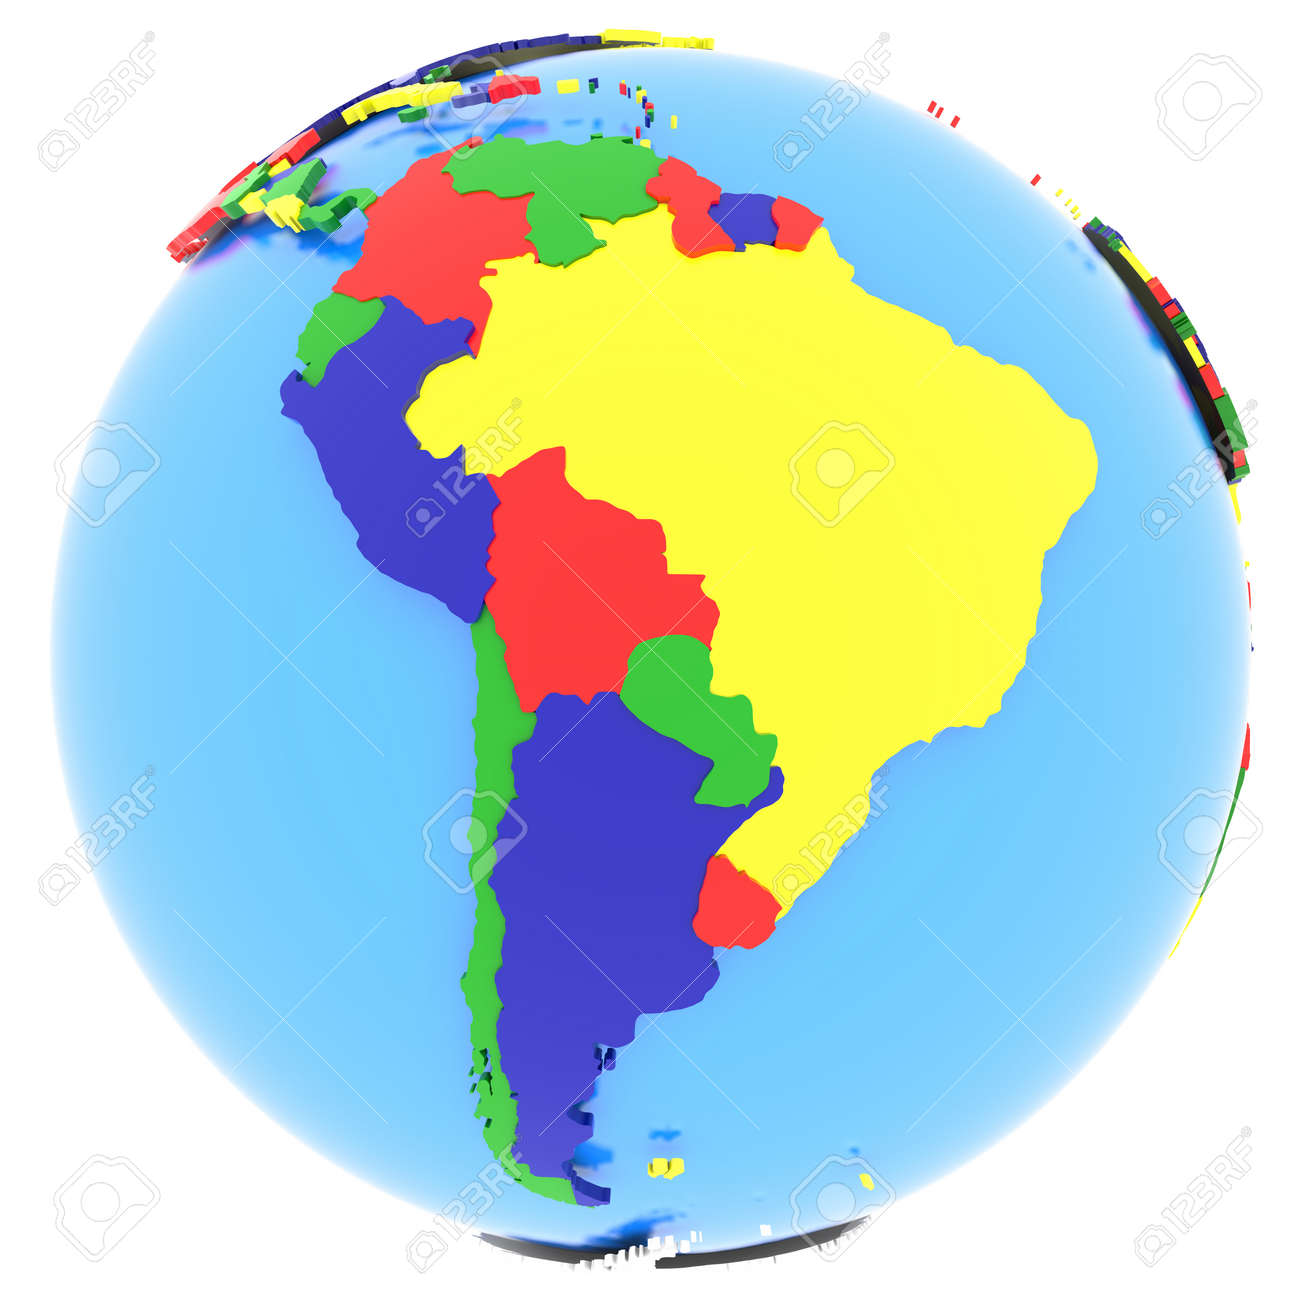 South America, political map of the world with countries in four.. on map of panama, map of venezuela, map of travel, map of argentina, map of spain, map of playa, map of bolivia, map of colombia, map of buenos aires, map of costa rica, map of africa, map of europe, map of sudamerica, map of las antillas, map of barbados, map of france, map of paraguay, map of peru, map of ecuador, map of australia,